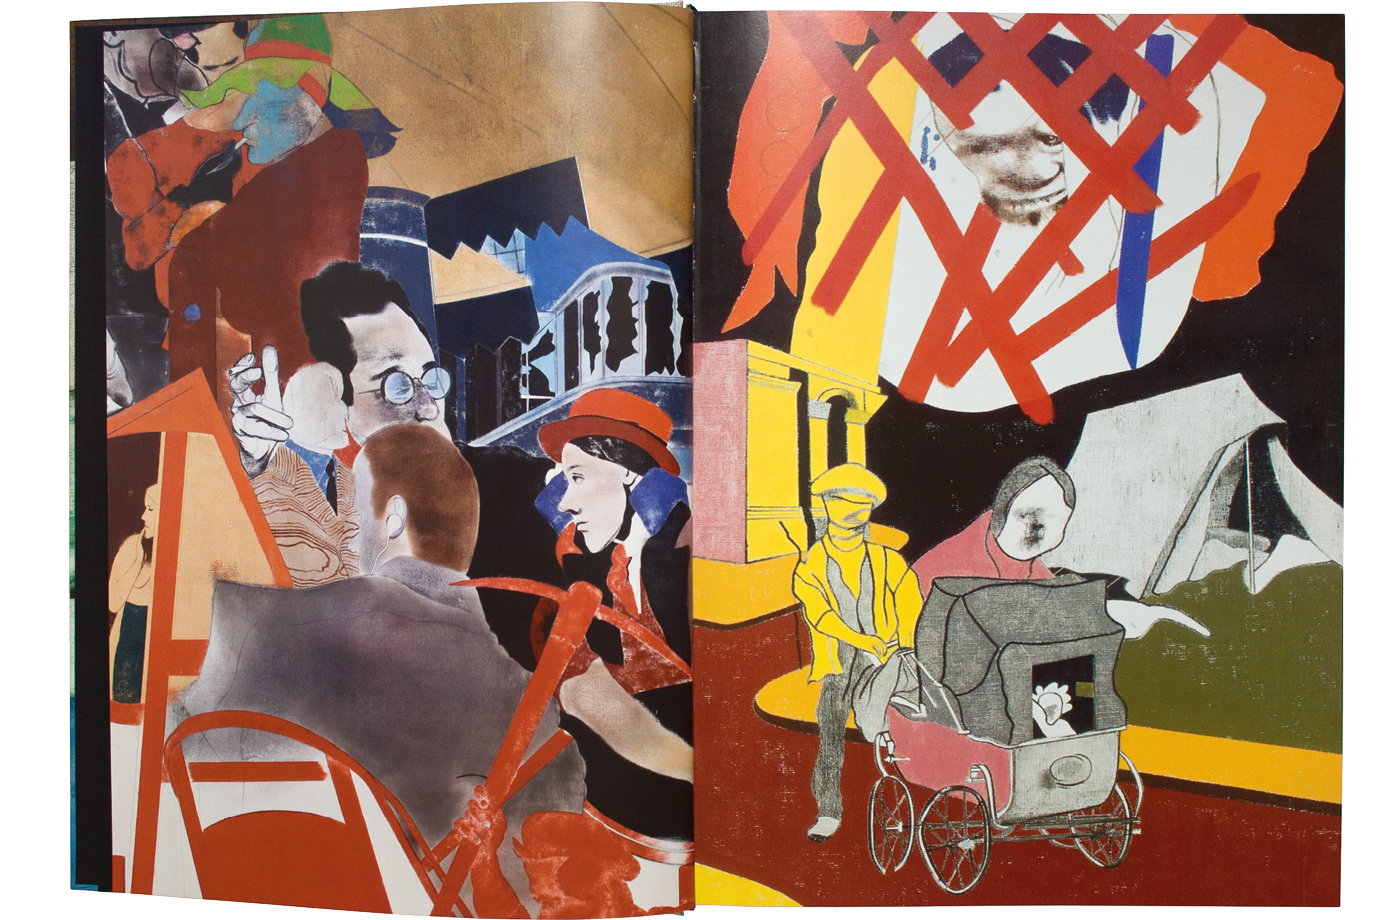 http://e-o-t.de/wordpress/wp-content/uploads/2017/07/eot-2012-Kitaj-Book-3.jpg